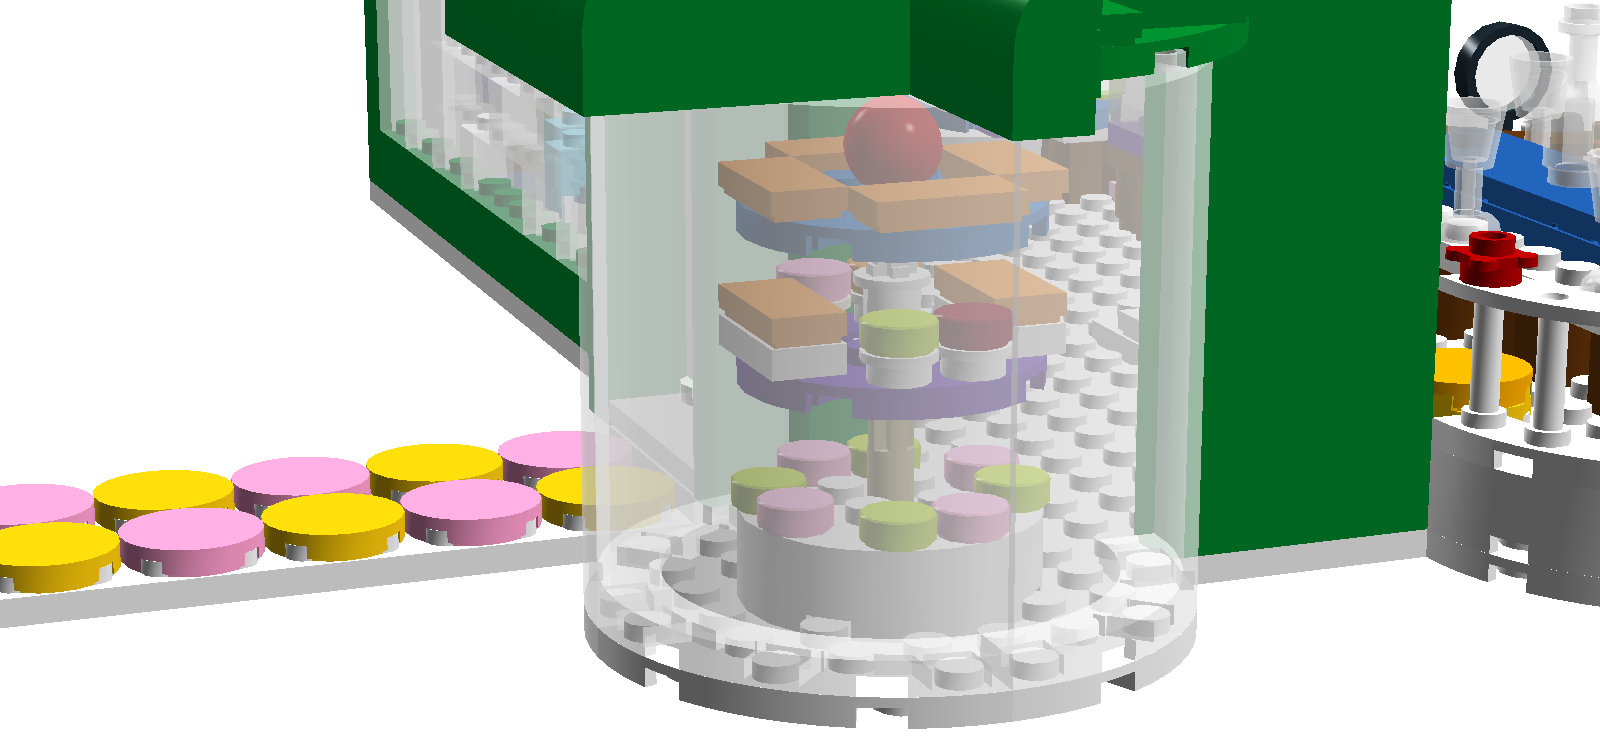 Legos clipart tower lego. Ideas product sushi bar